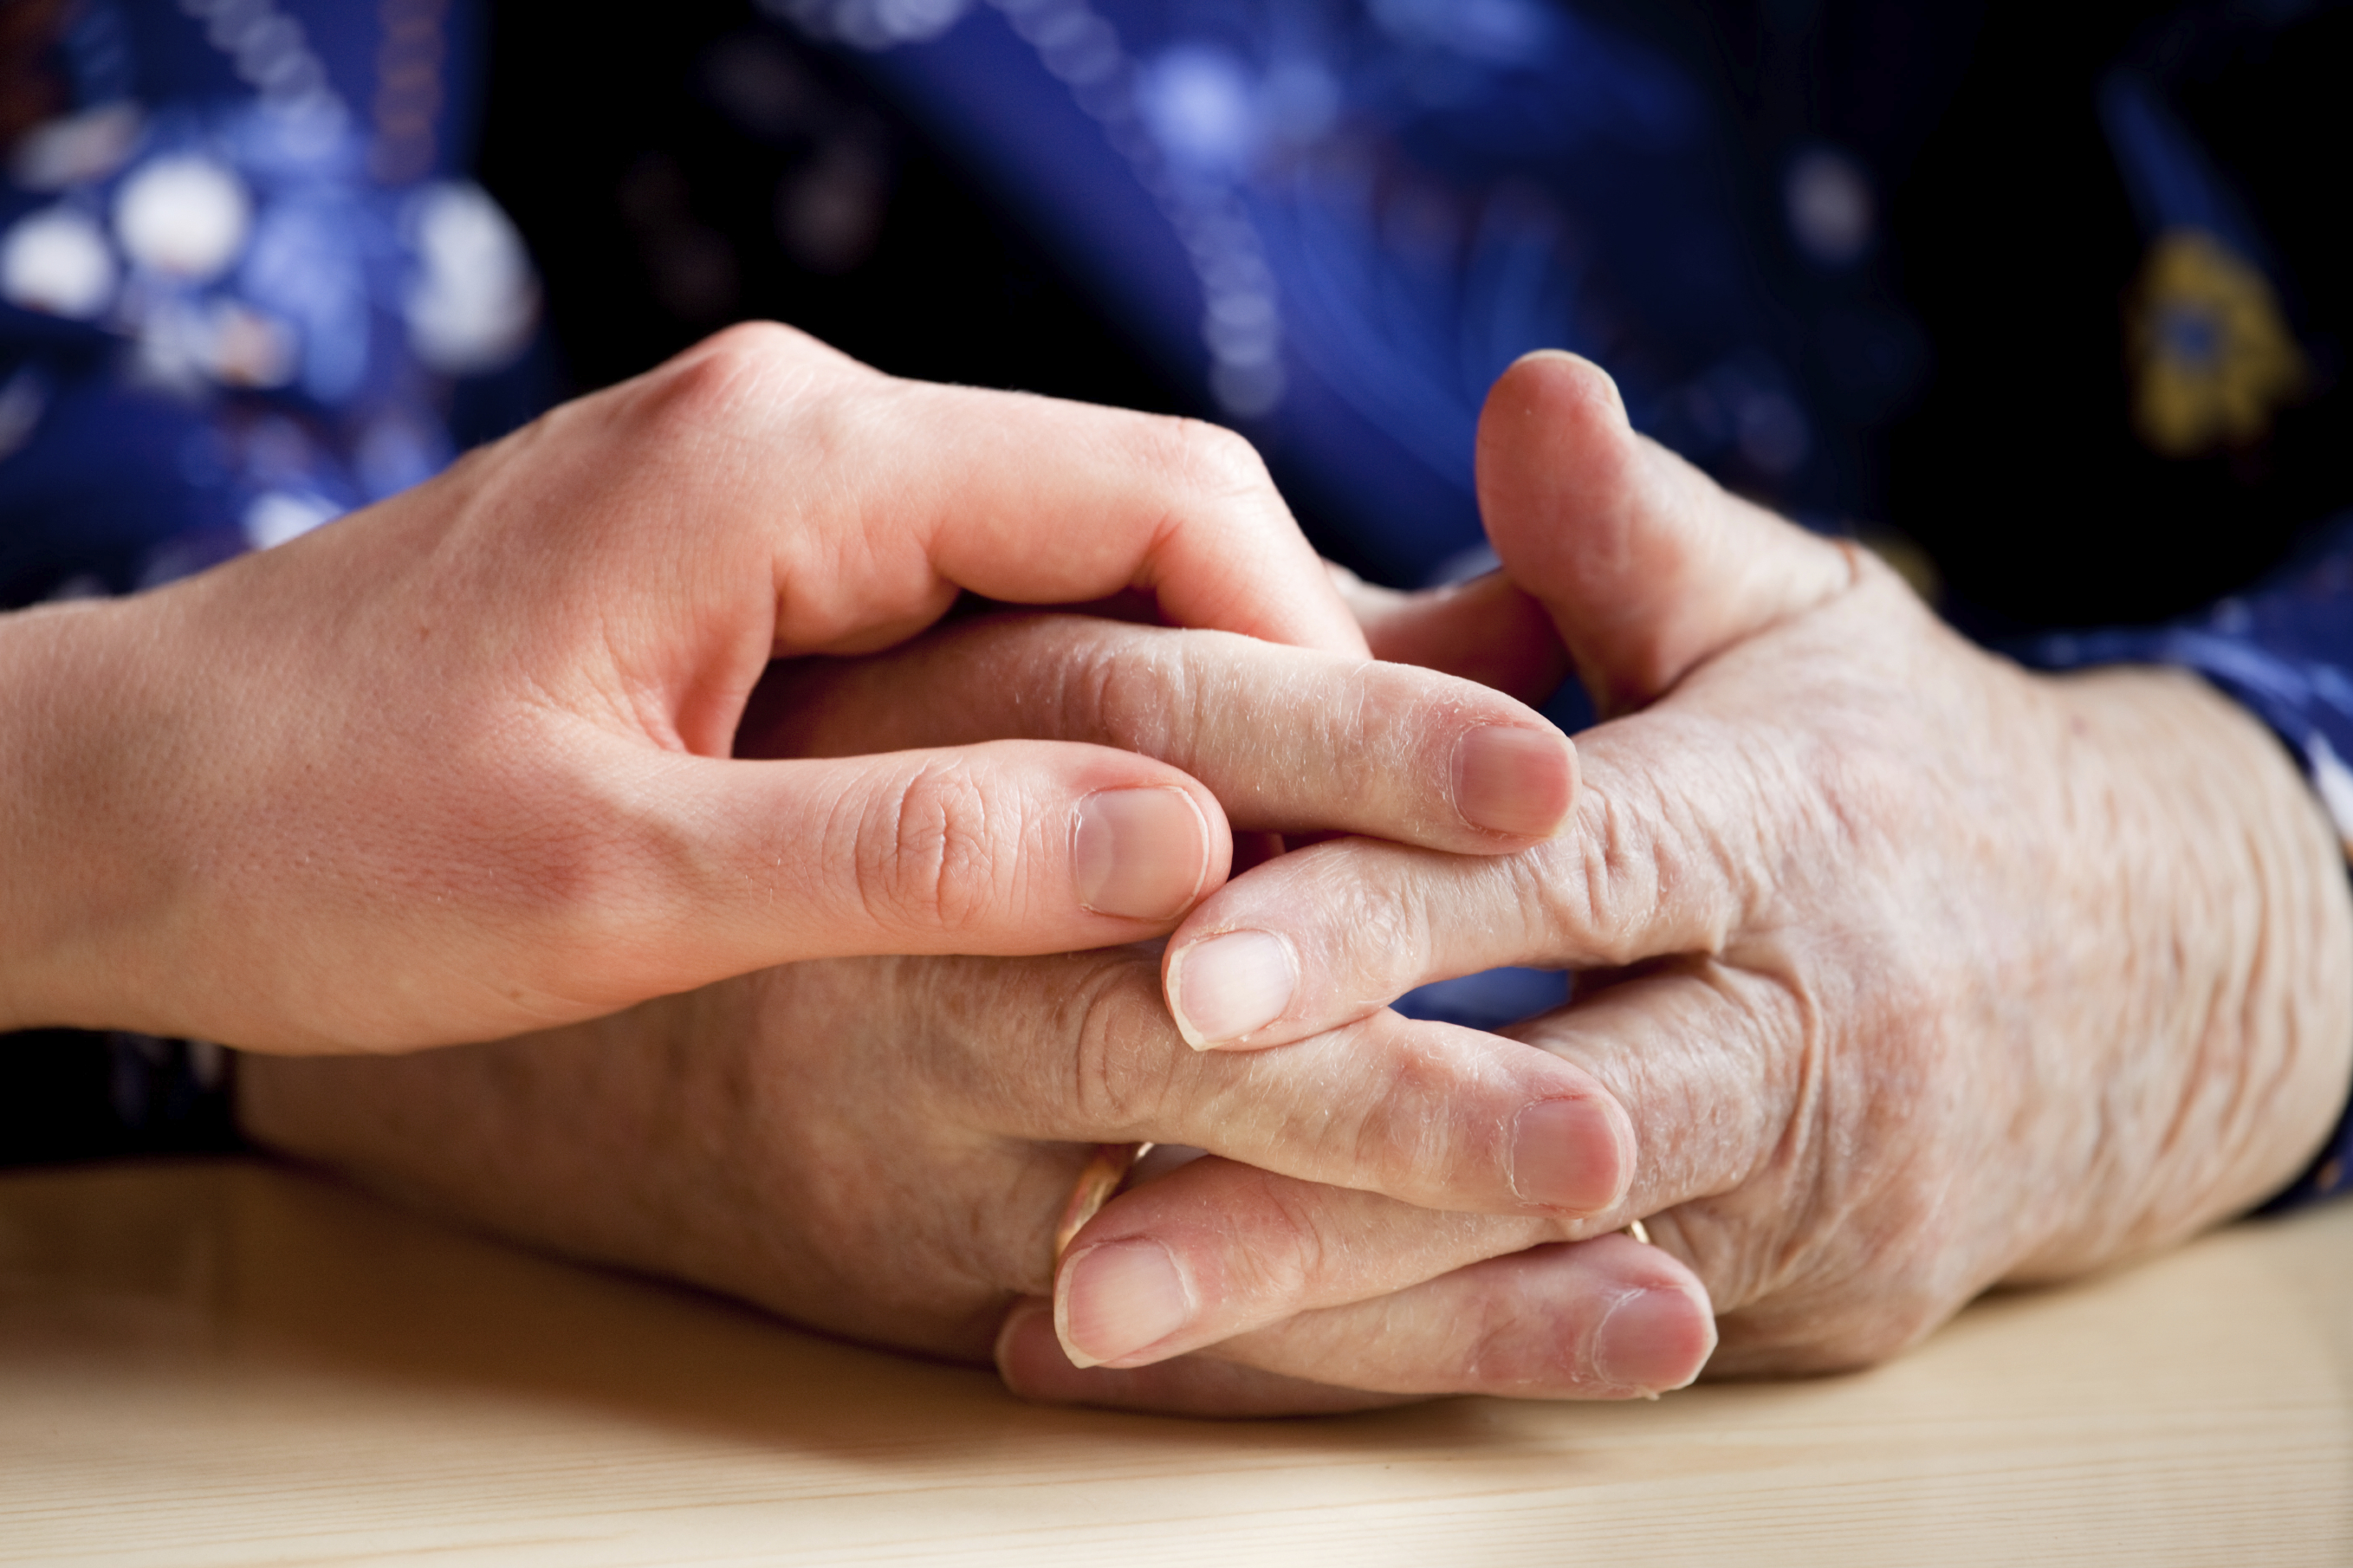 St Charles Nursing Home Abuse Lawyers Kenneth LaBore and Suzanne Scheller